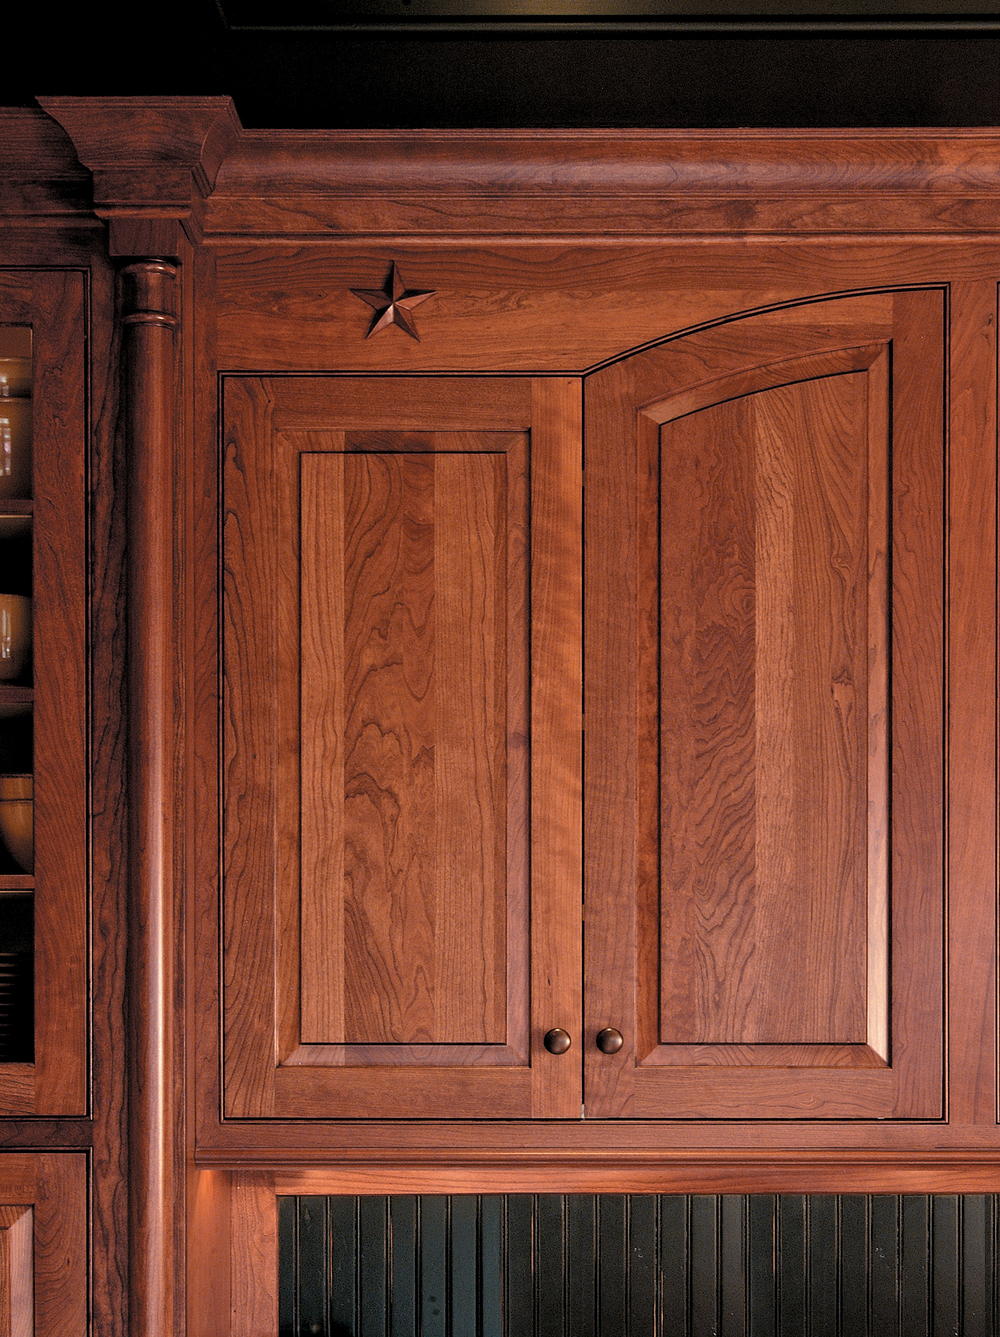 Door Star Detail.jpg